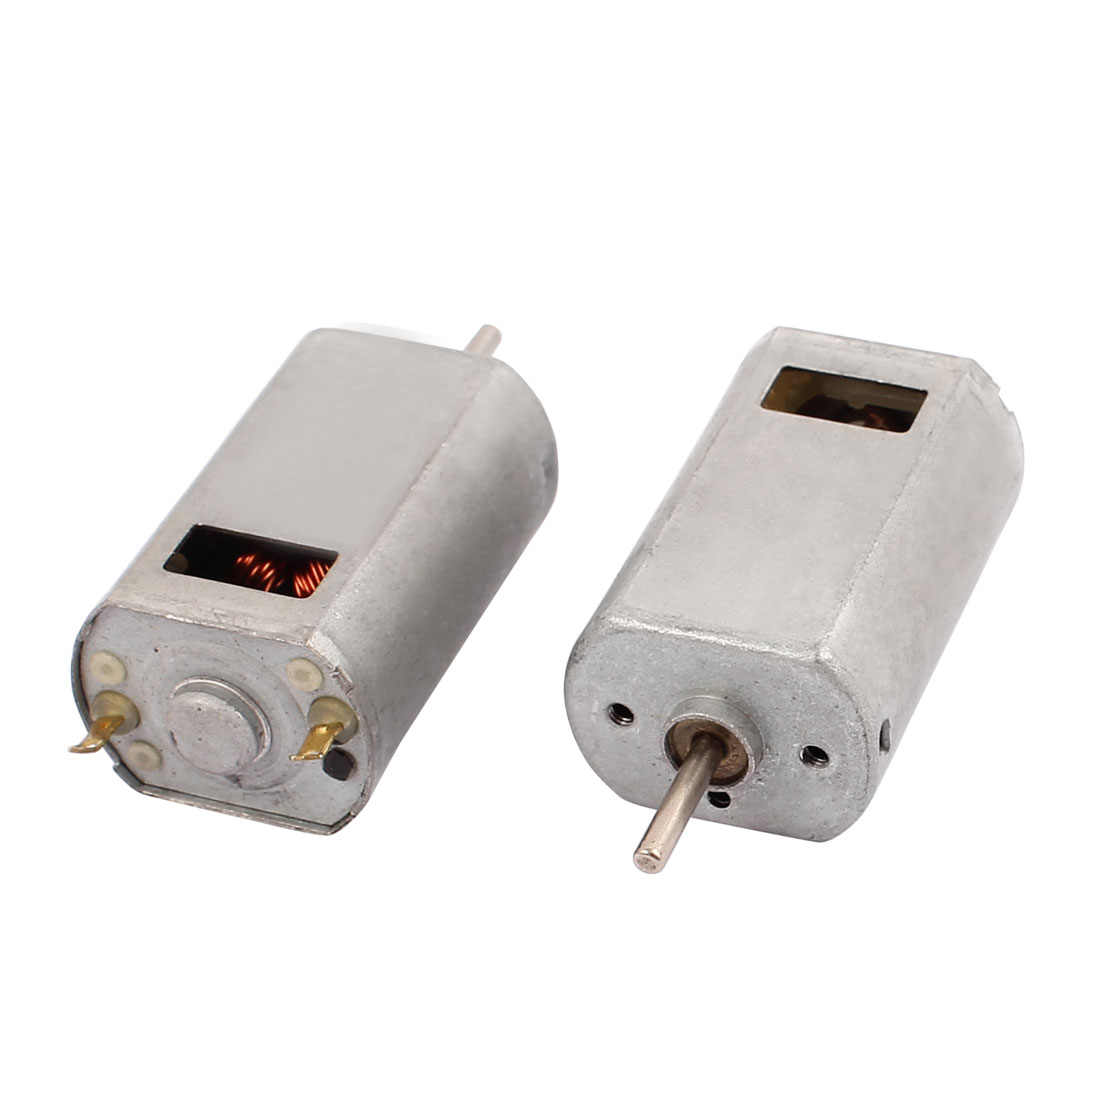 2Pcs DC 1.5-12V 22400RPM Large Torque Strong Magnet Micro DC Motor for Electric Toy